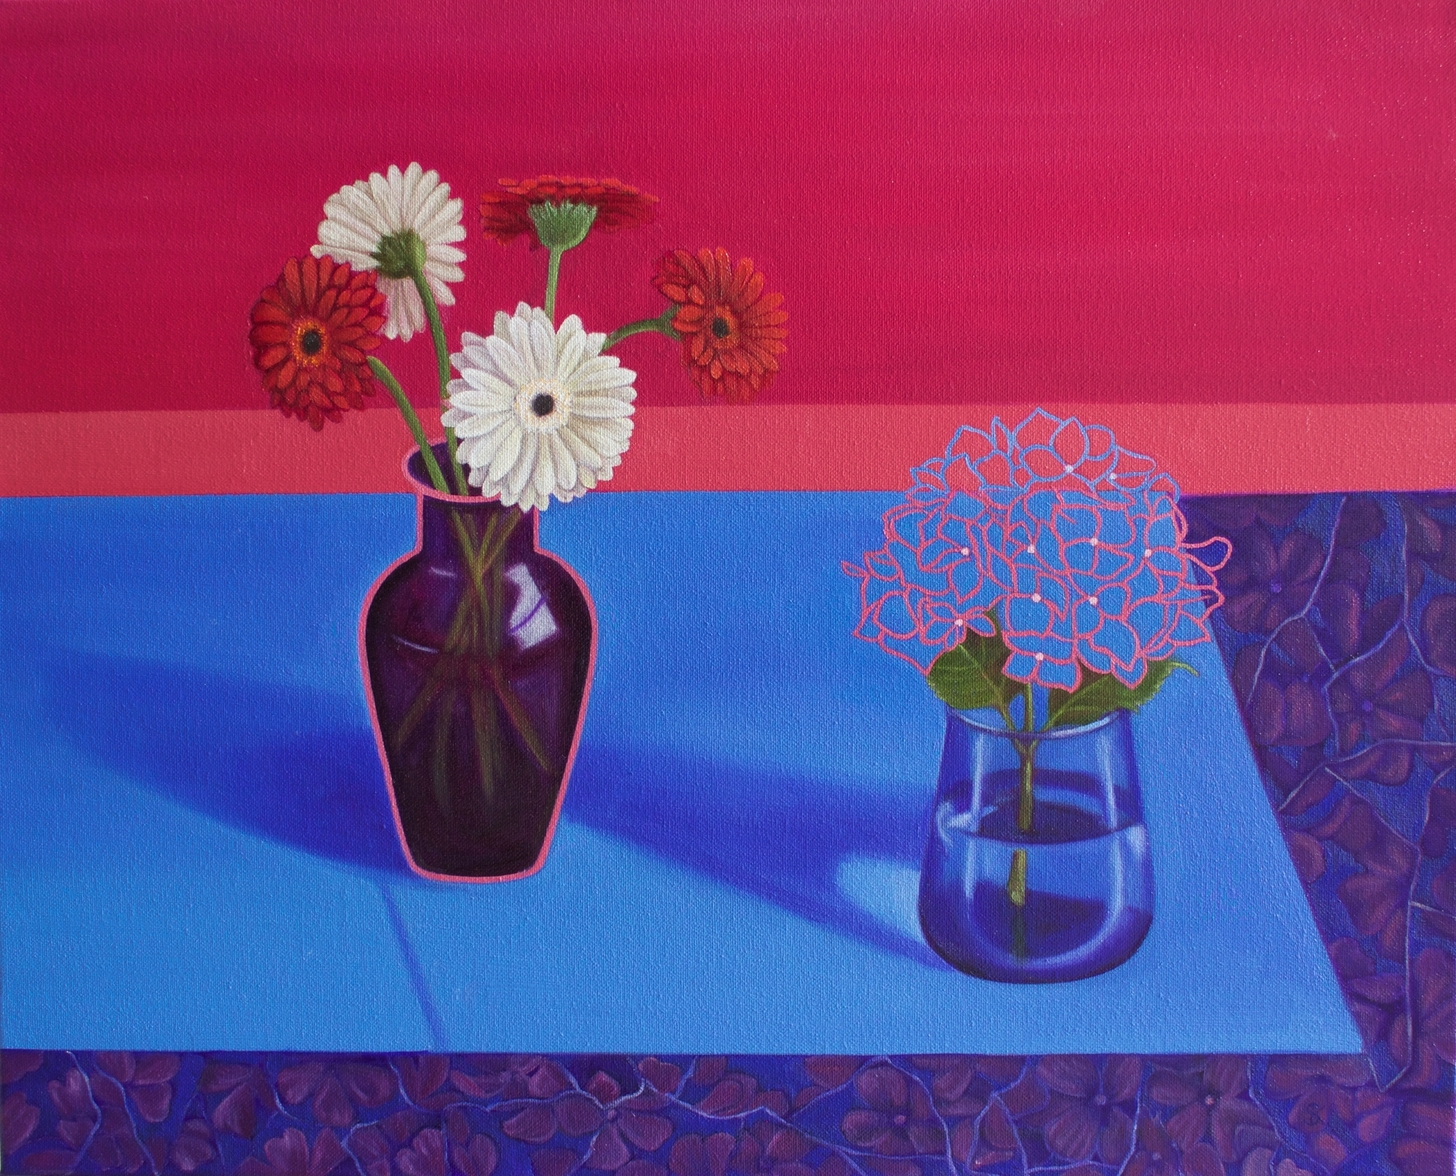 'Gerberas & Hydranger', Suzanne Kemplay, Oil on canvas, 40 x 50 x 1 cm